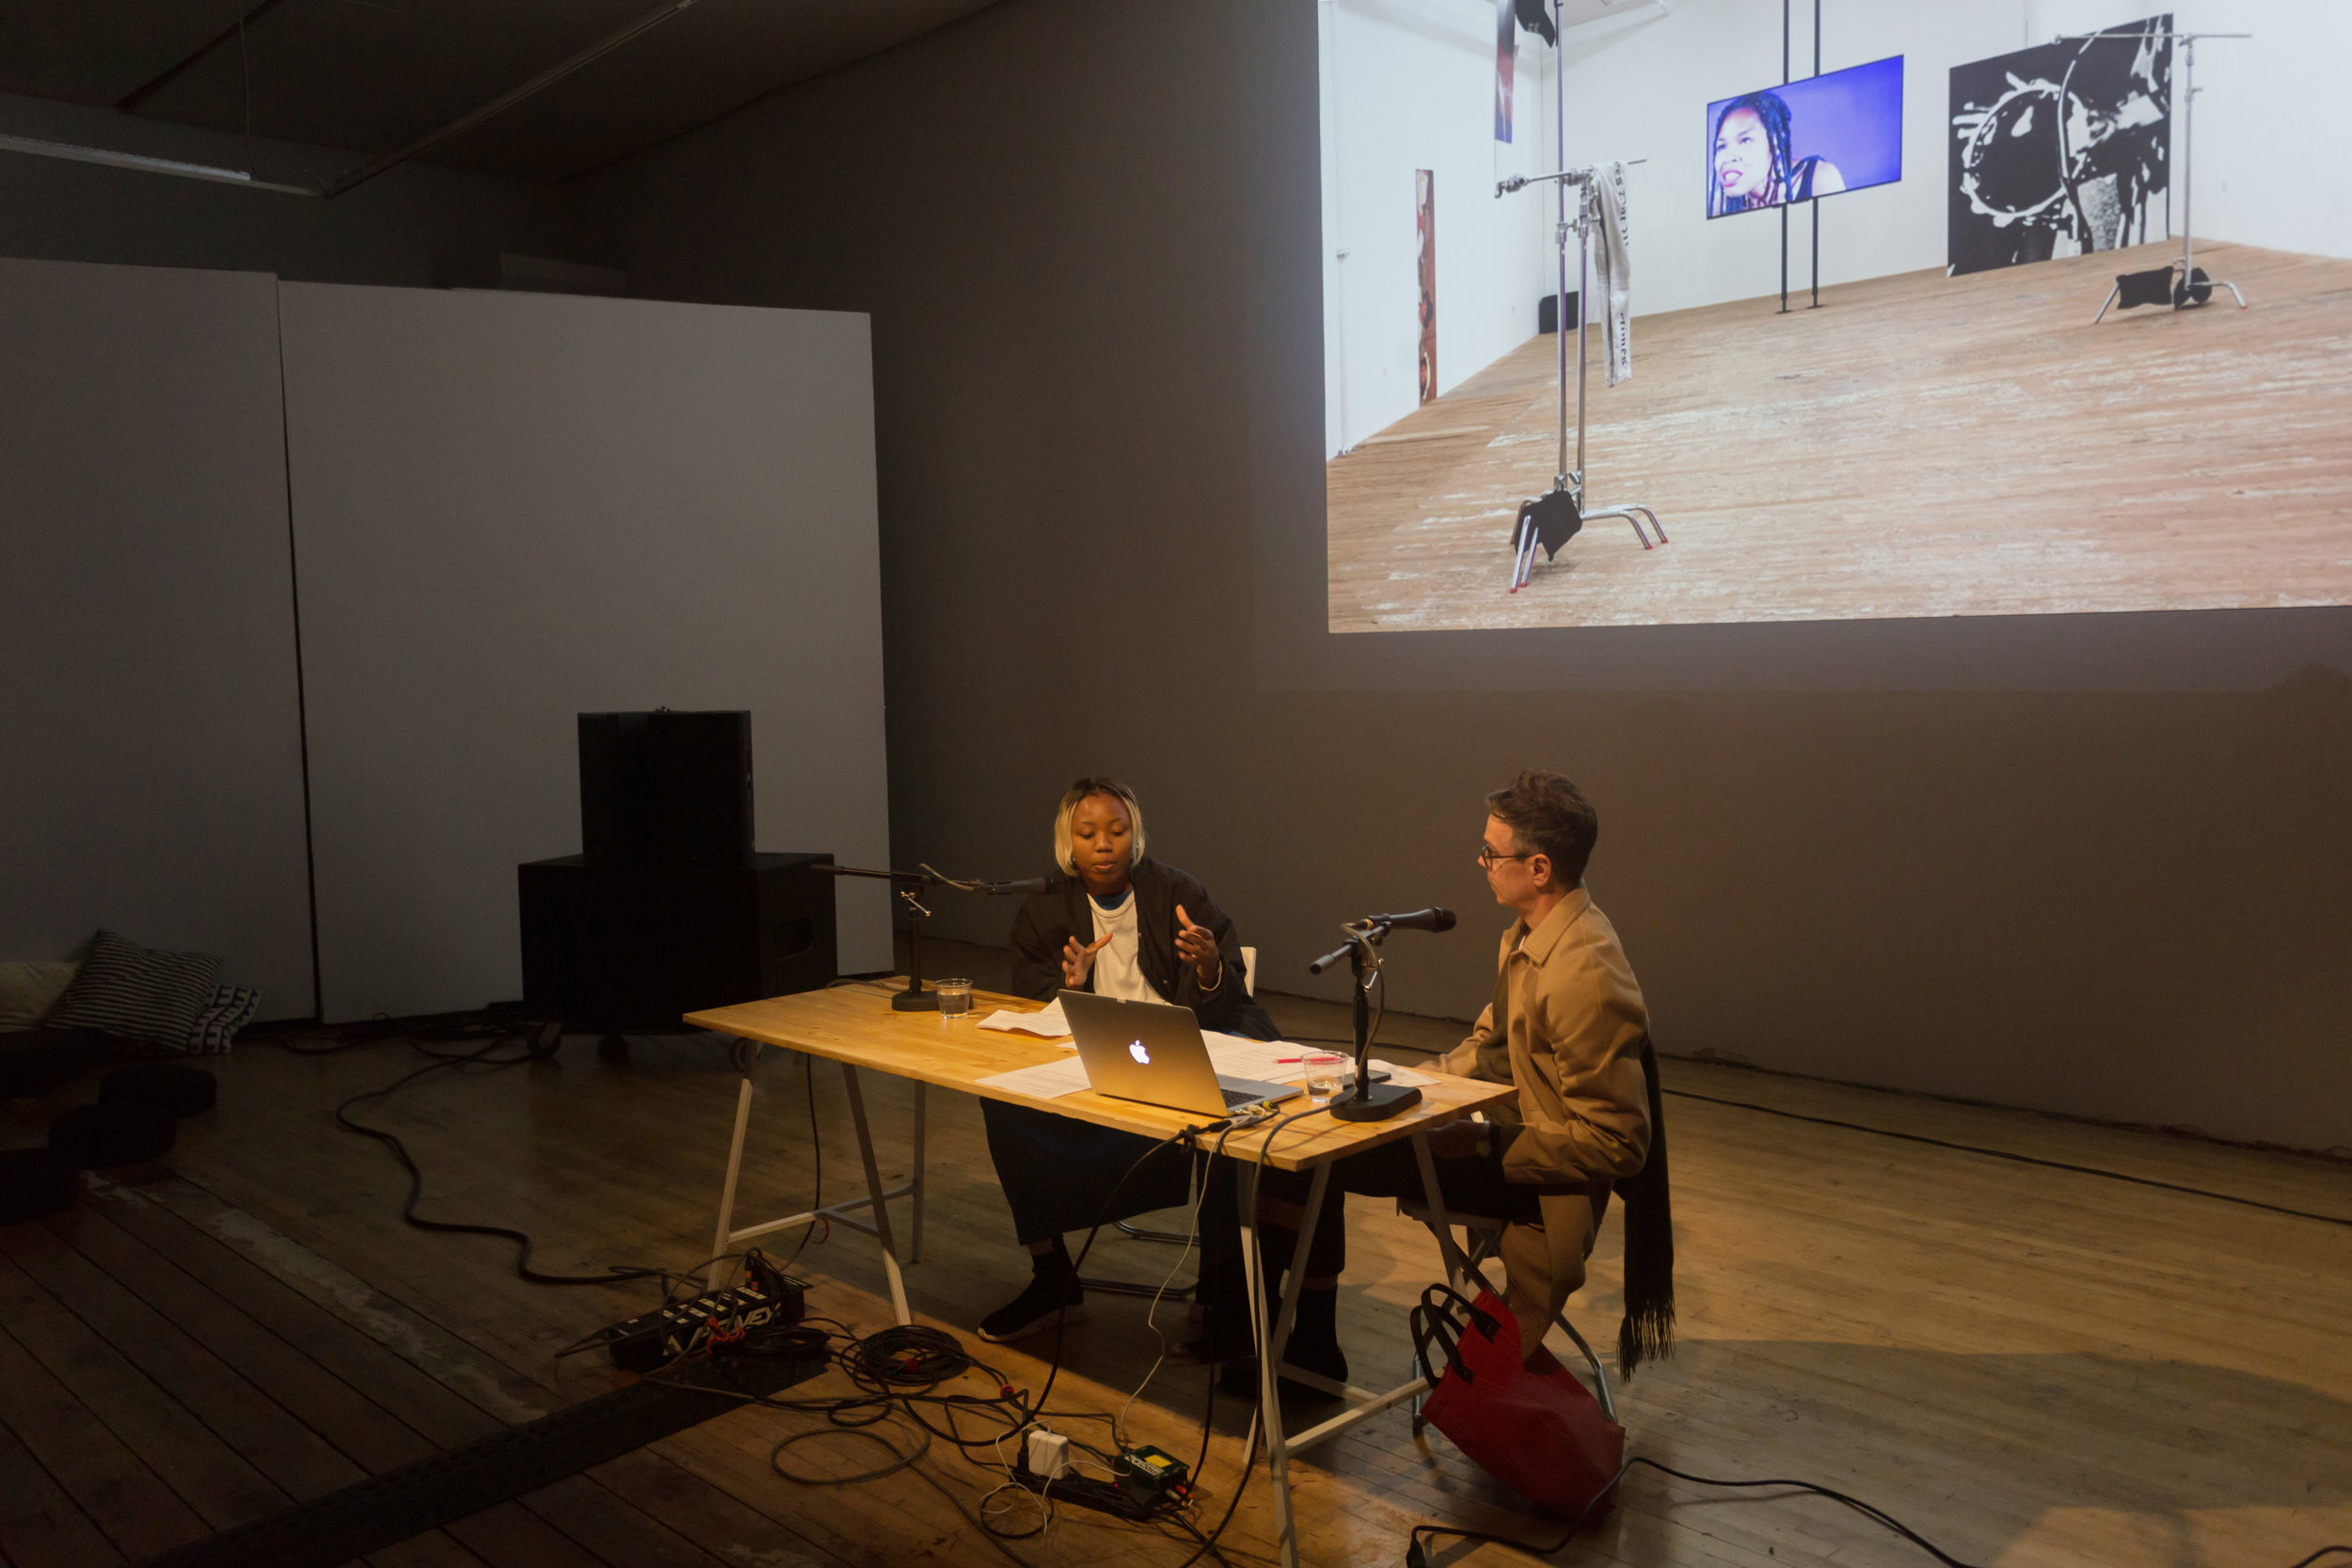 Martine Syms in conversation with James Voorhies, February 26, 2018. The Lab, San Francisco.